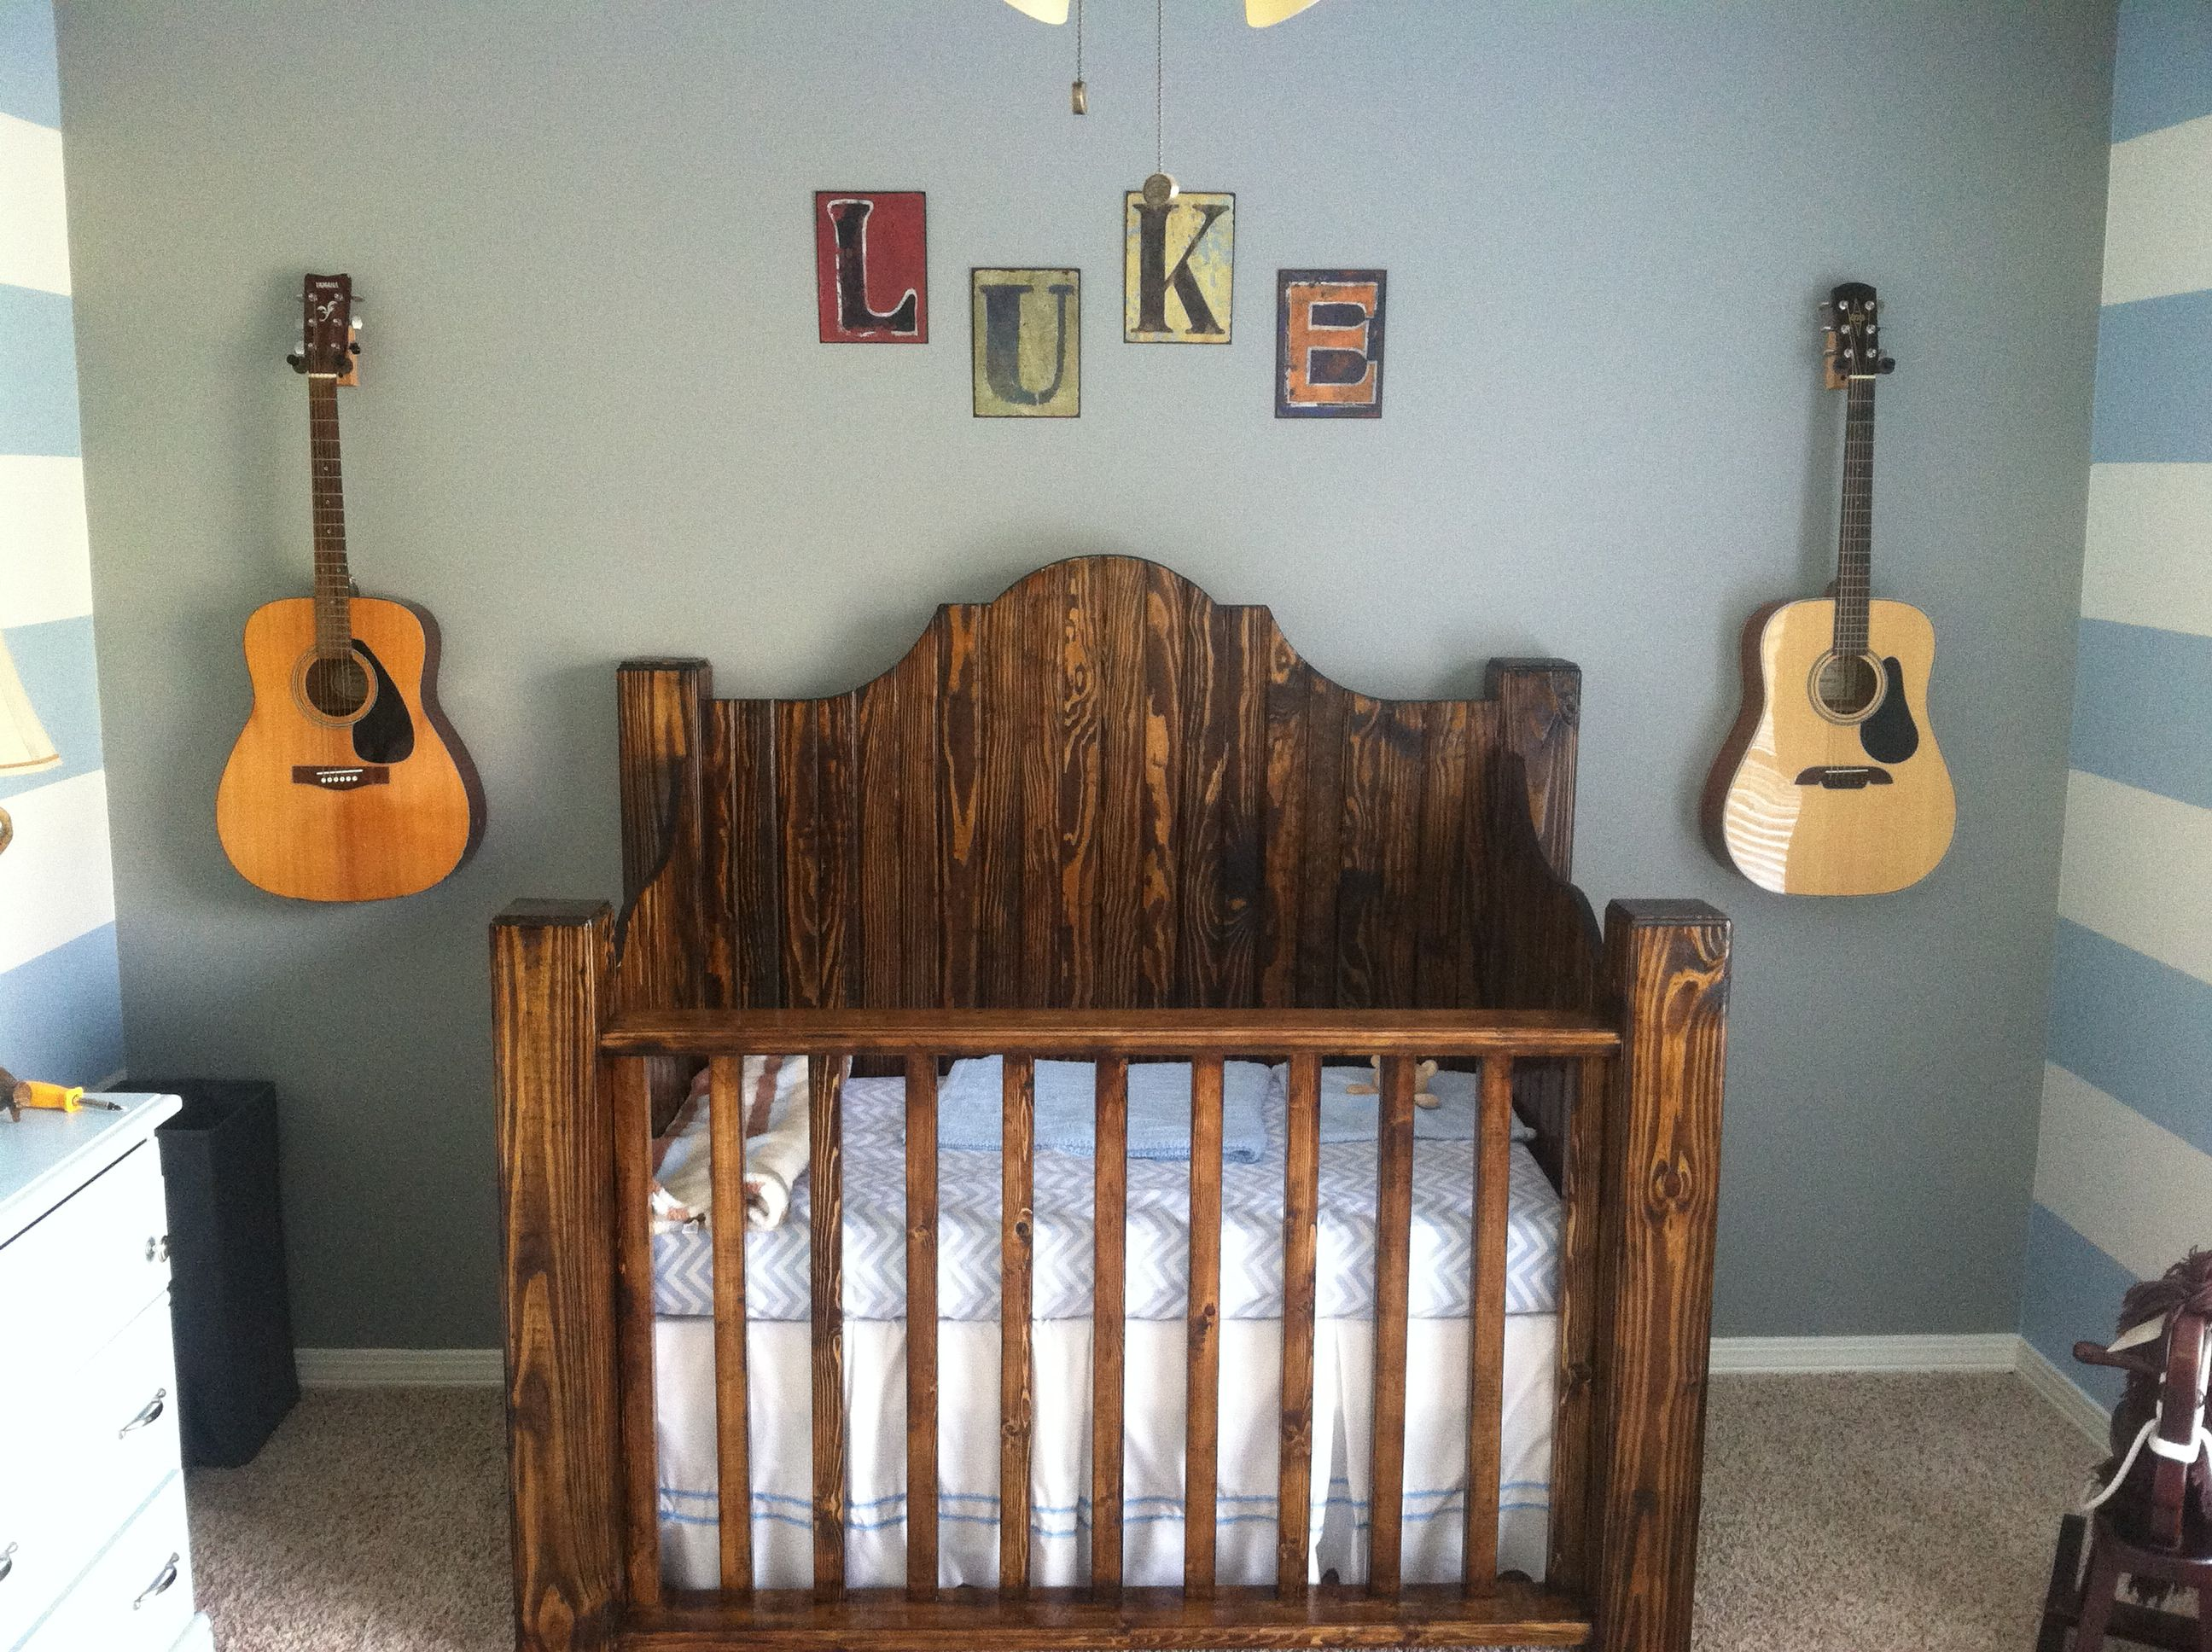 Jameson panel crib for sale - Rustic Crib Would Be Great To Use As Headboards For Twin Beds When The Twins